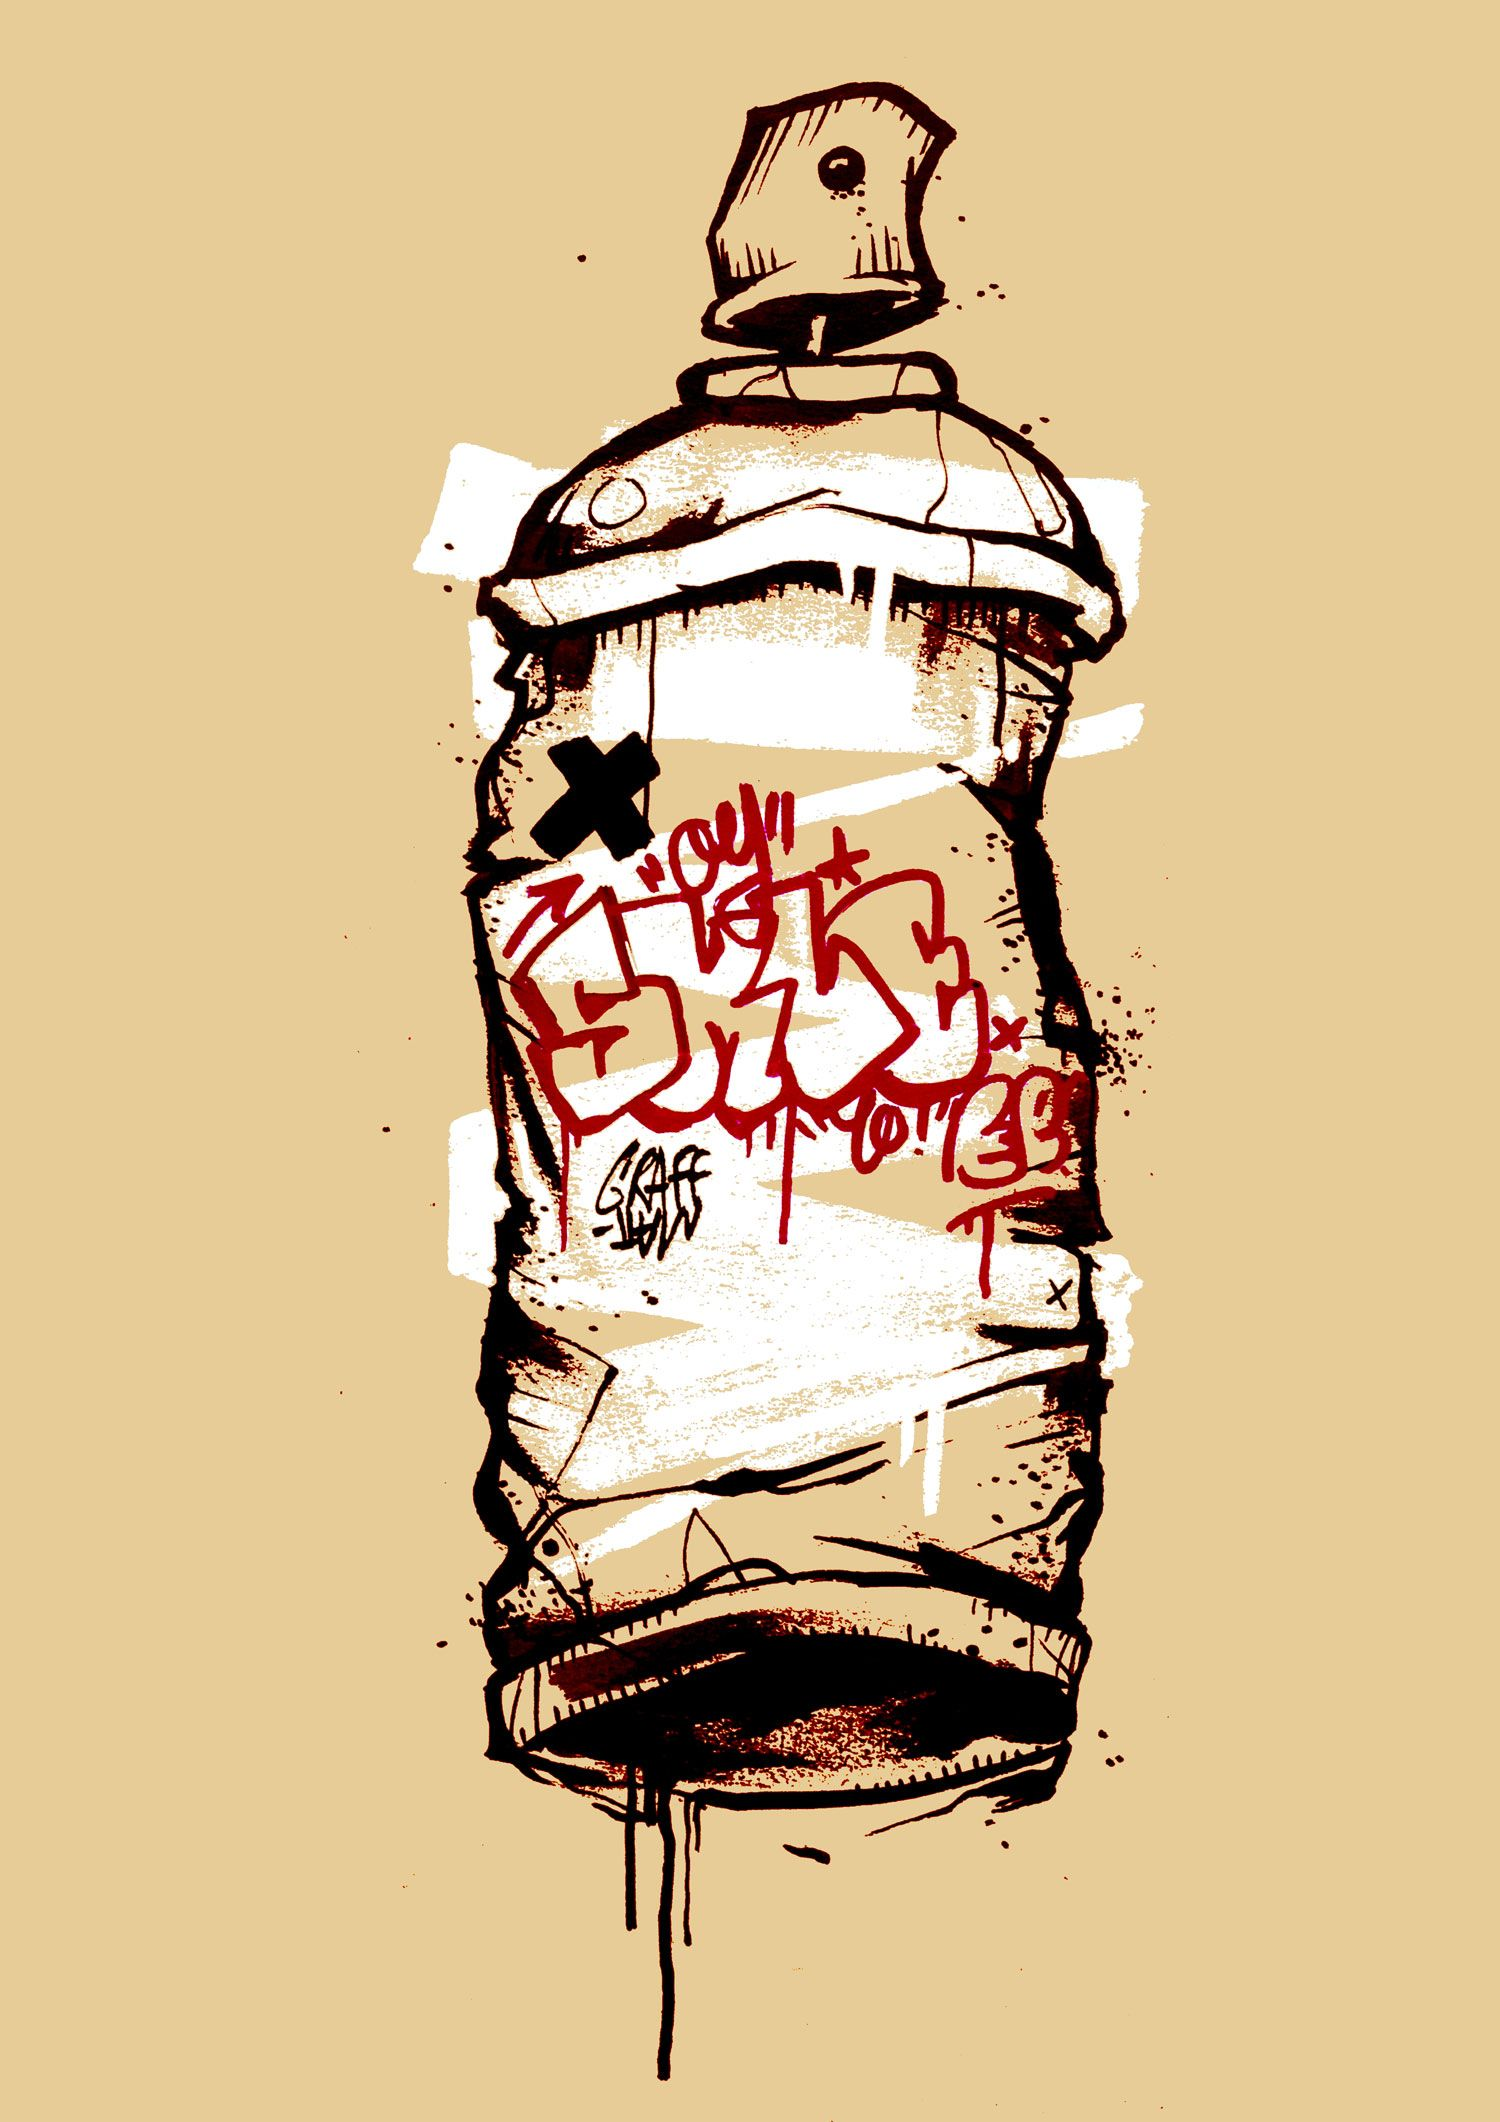 Spray can by graffmatt graffmatt art spray sprayart spraypaint spraycan